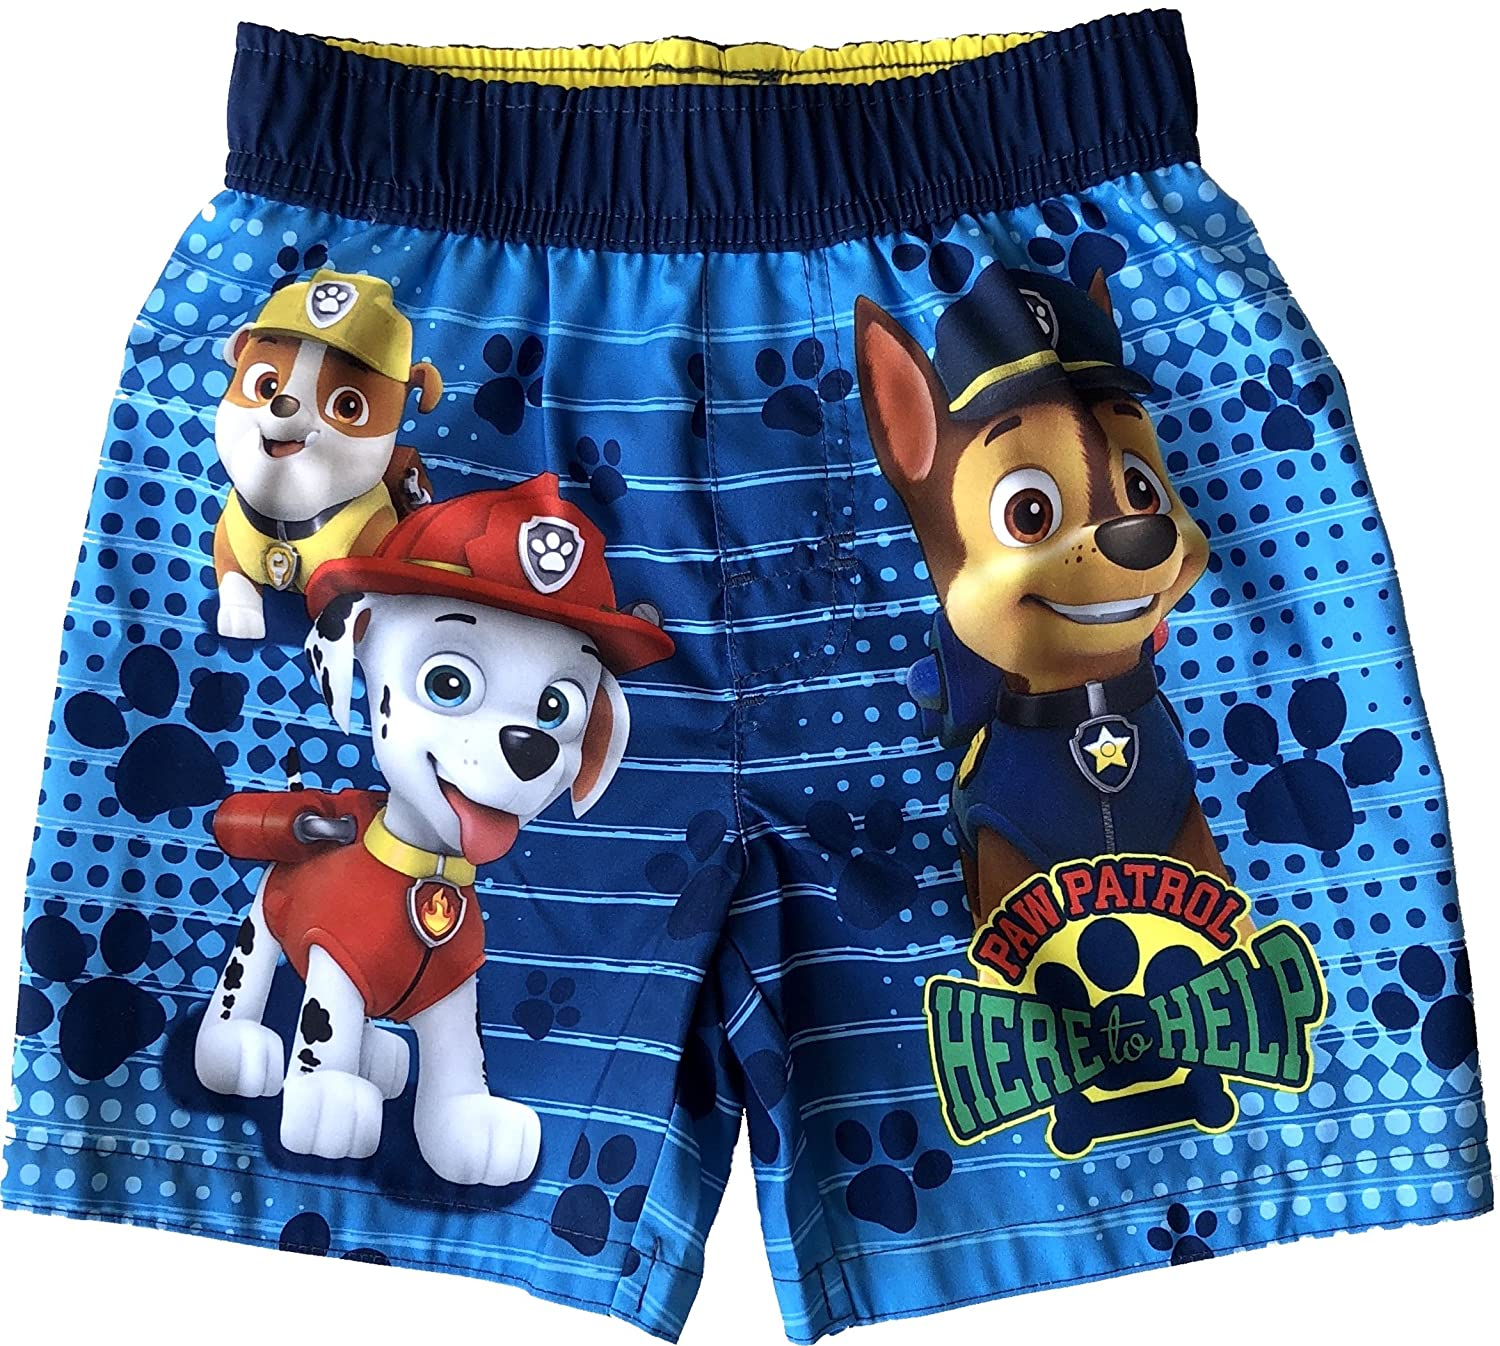 Toddler Boys Paw Patrol Here To Hear Blue Swim Short Trunk